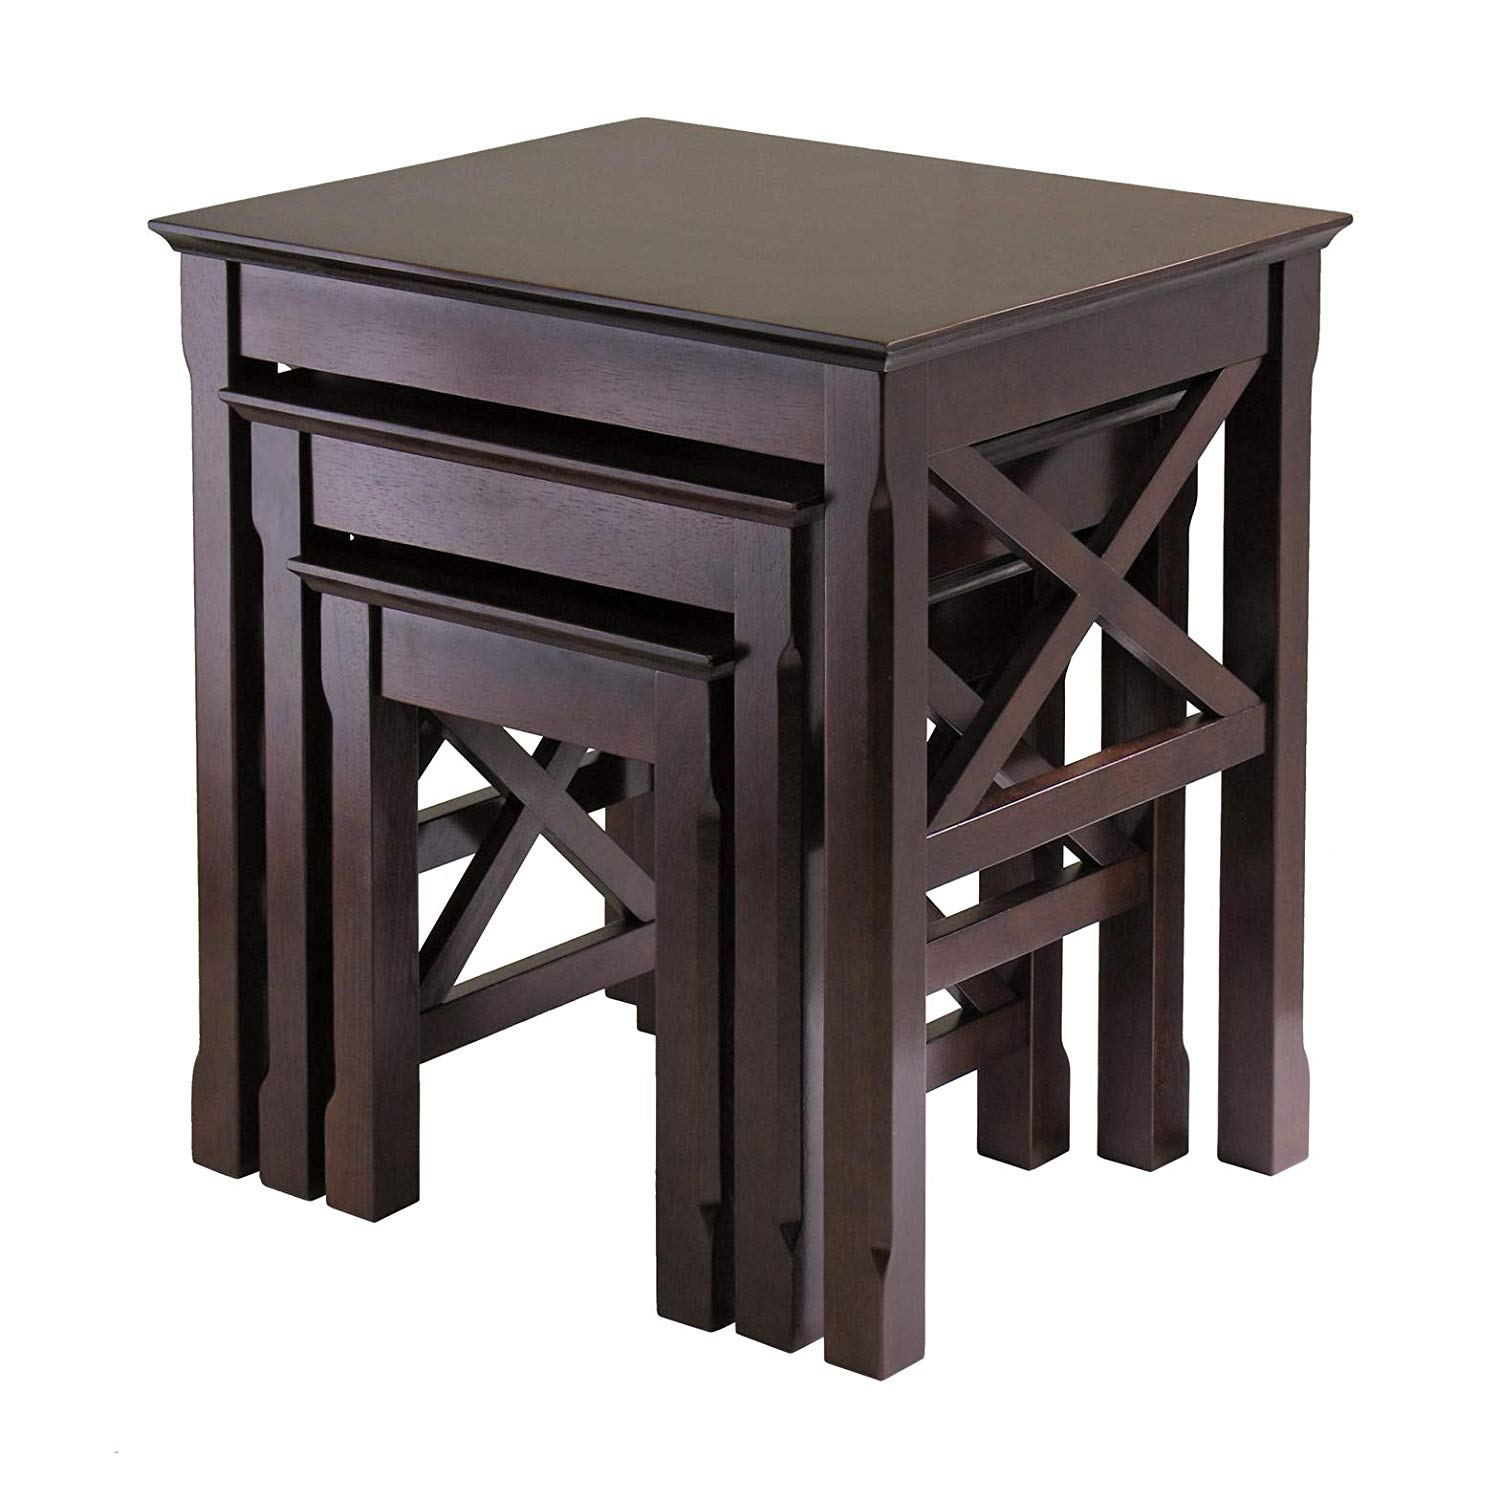 winsome wood xola occasional table cappuccino accent kitchen dining small round antique with drawer outdoor furniture winnipeg mirage mirrored black coffee glass ott college